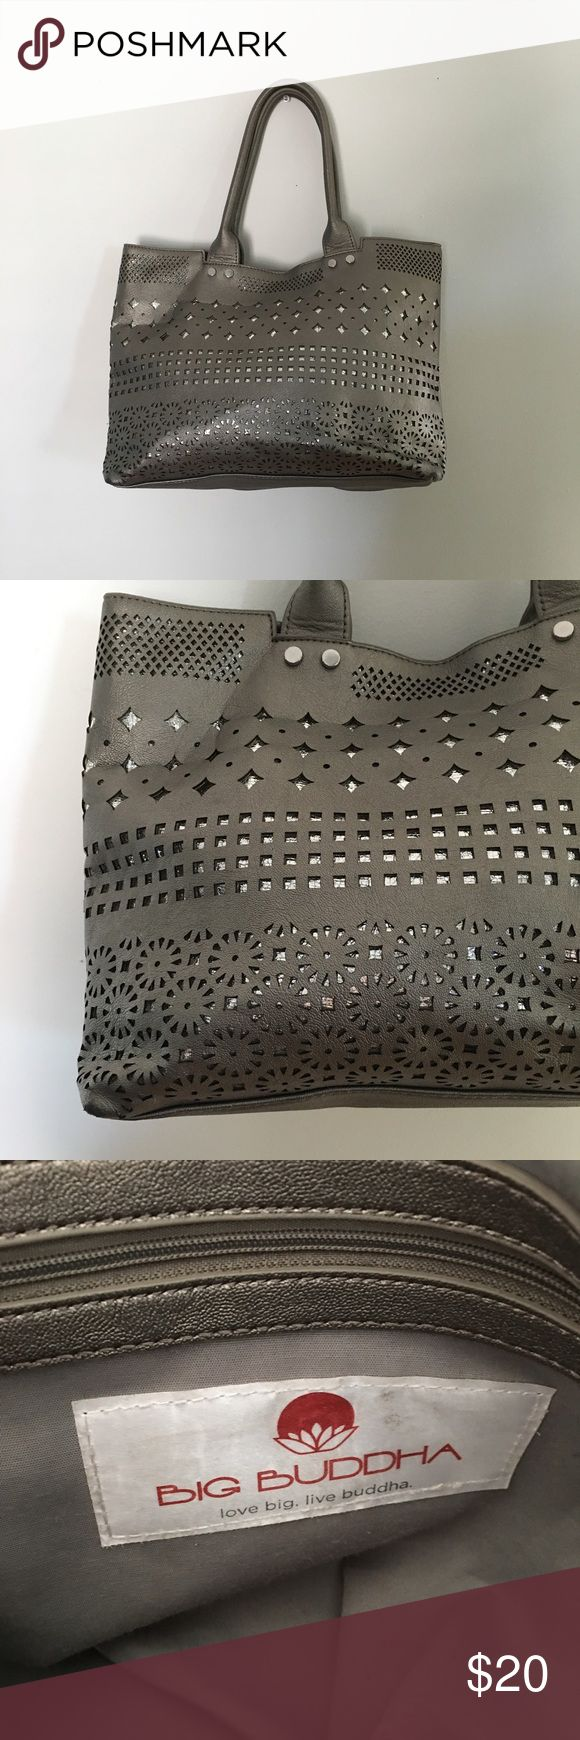 Big Buddha Cut-out purse Vegan leather silver laser cut out purse! Small lip stick stain on inner pocket (see pictures). Features multiple inside pockets and a middle divider. Snap closure. Big Buddha Bags Shoulder Bags